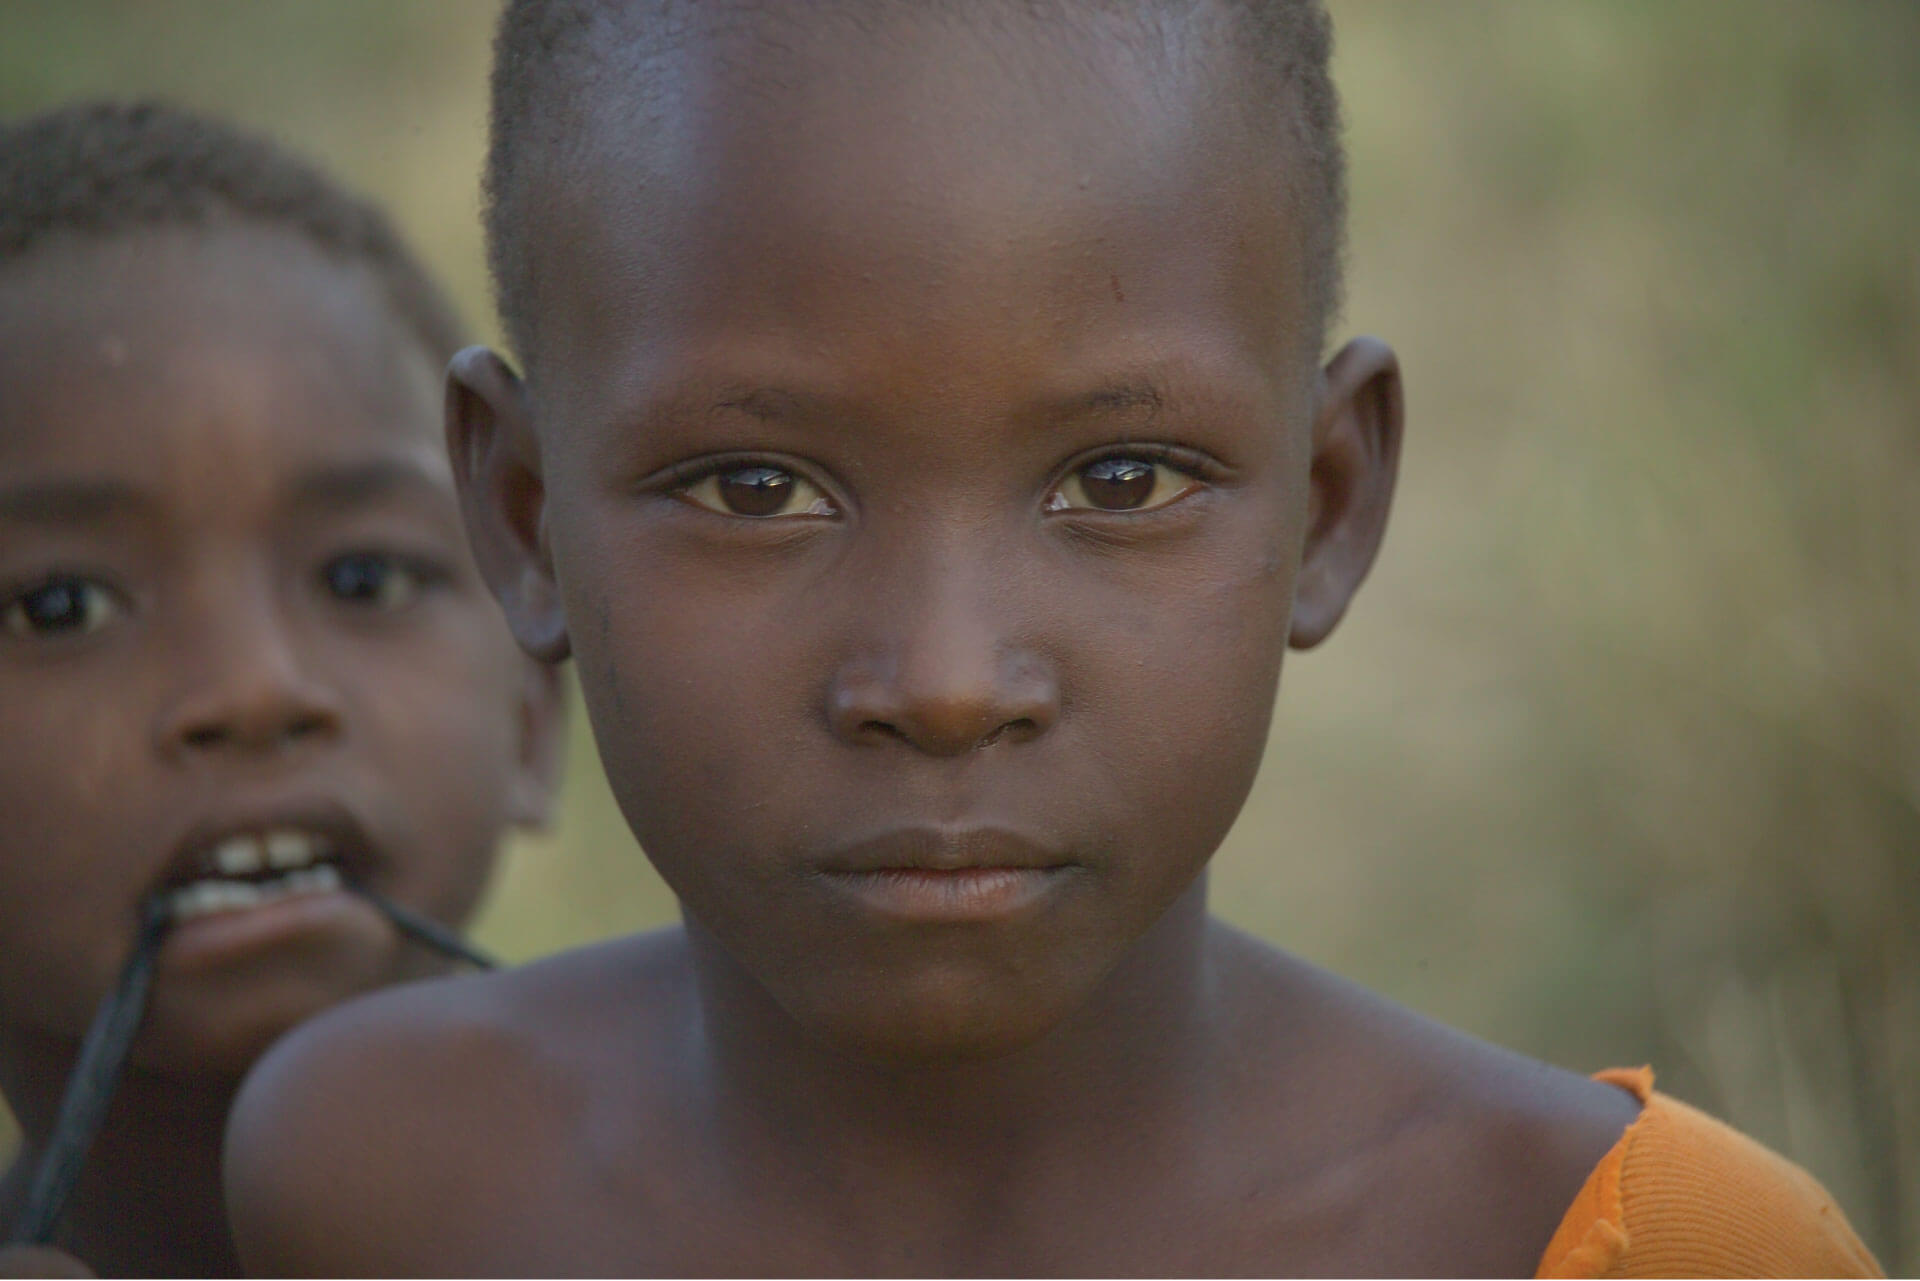 Photo of a child looking at the camera